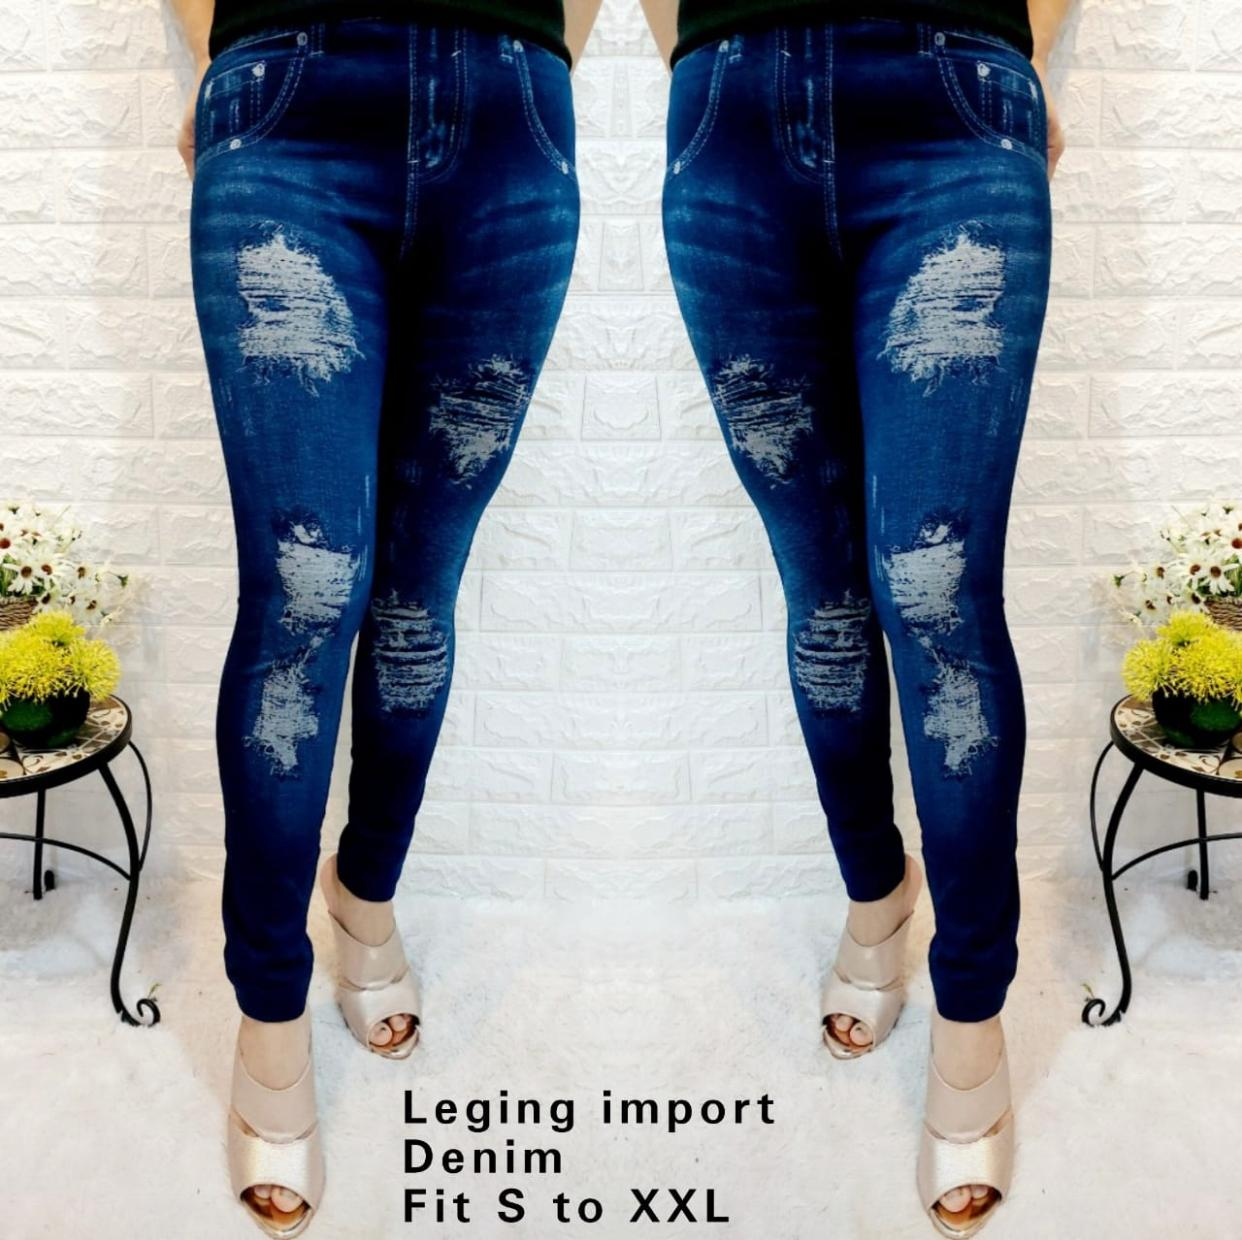 Terbaru Celana Leging Denim Import Legging Premium Bahan Kaos Import Denim All Size Merapi Indah Lazada Indonesia